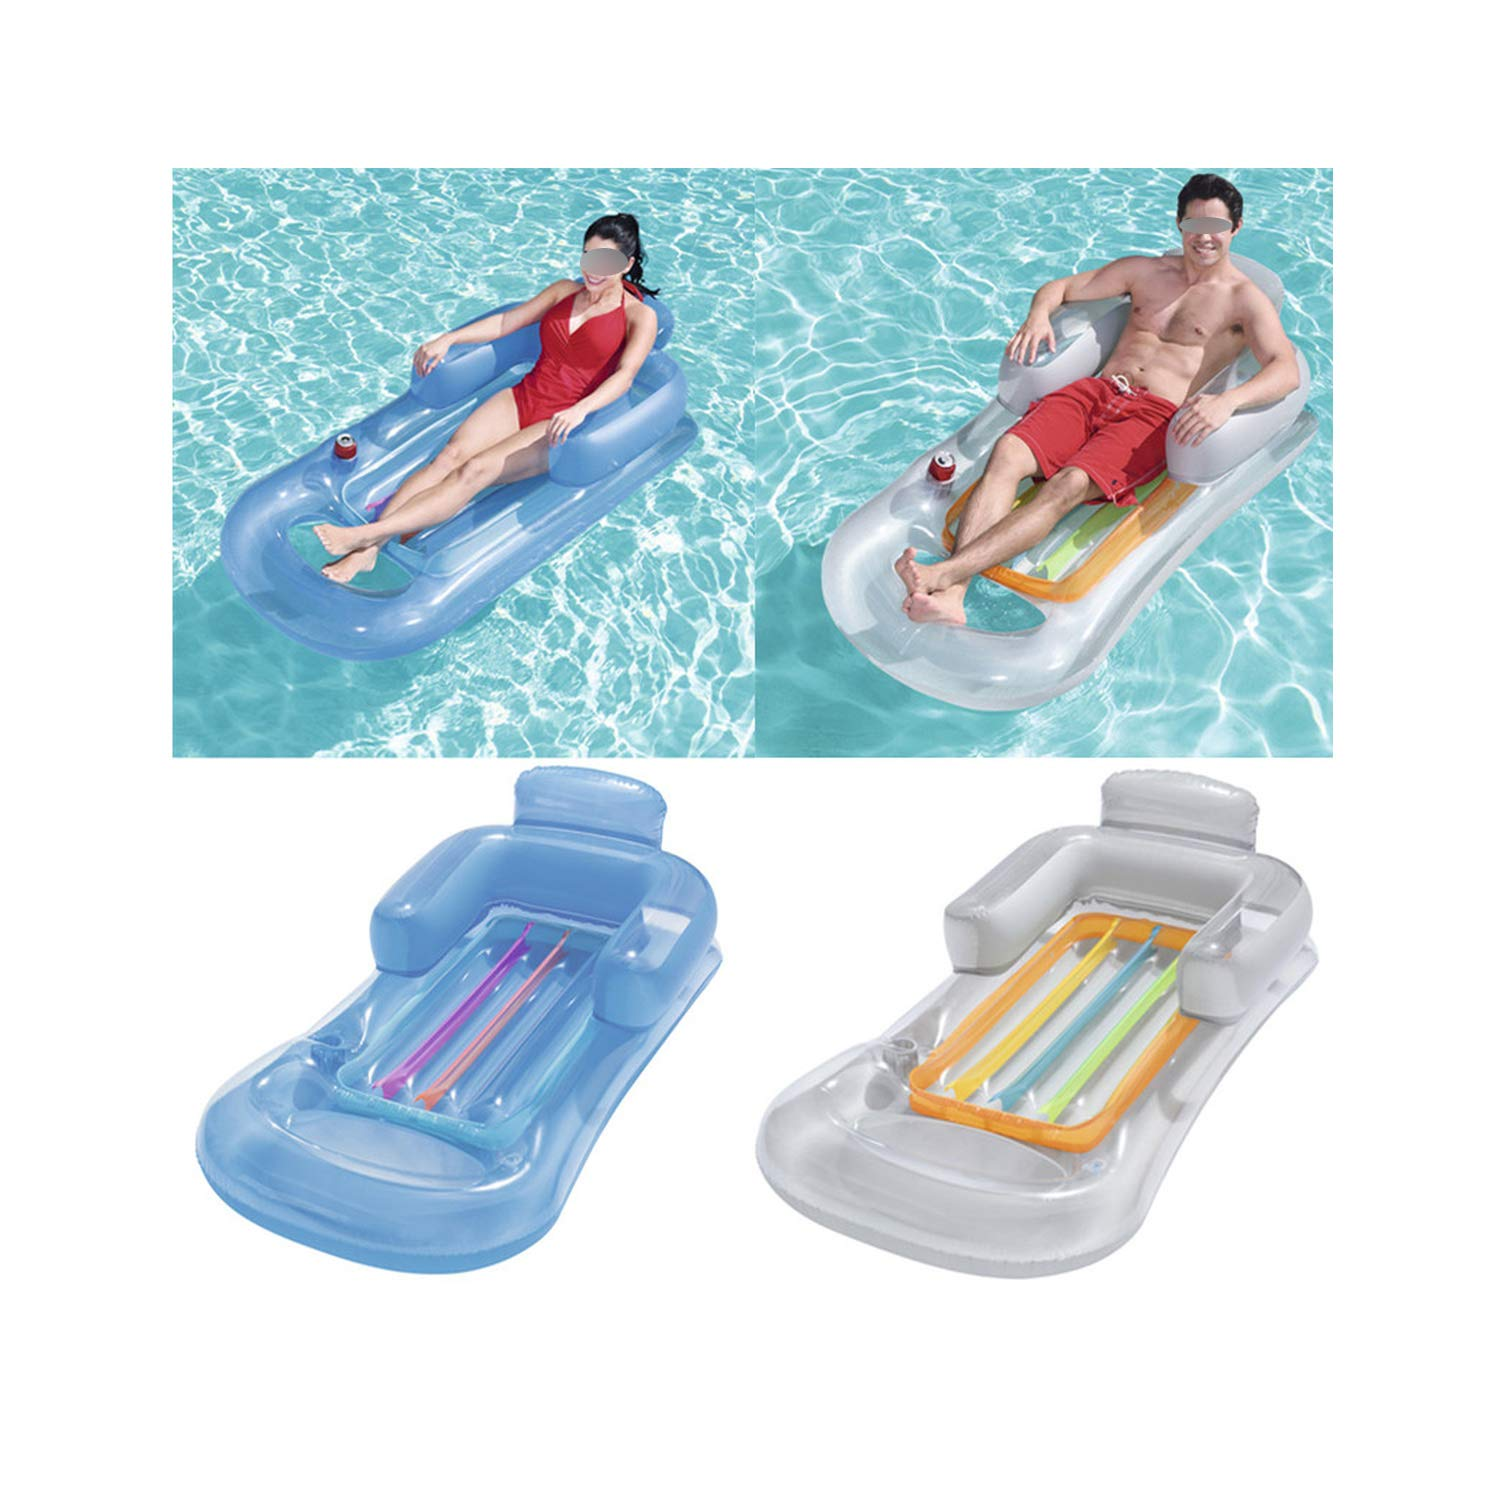 QIUHUAXIANG Inflatable Floating Row 157X89Cm Beach Swimming Air Mattress Pool Floats Floating Lounge Sleeping Bed for Water Sports Party,Random Color